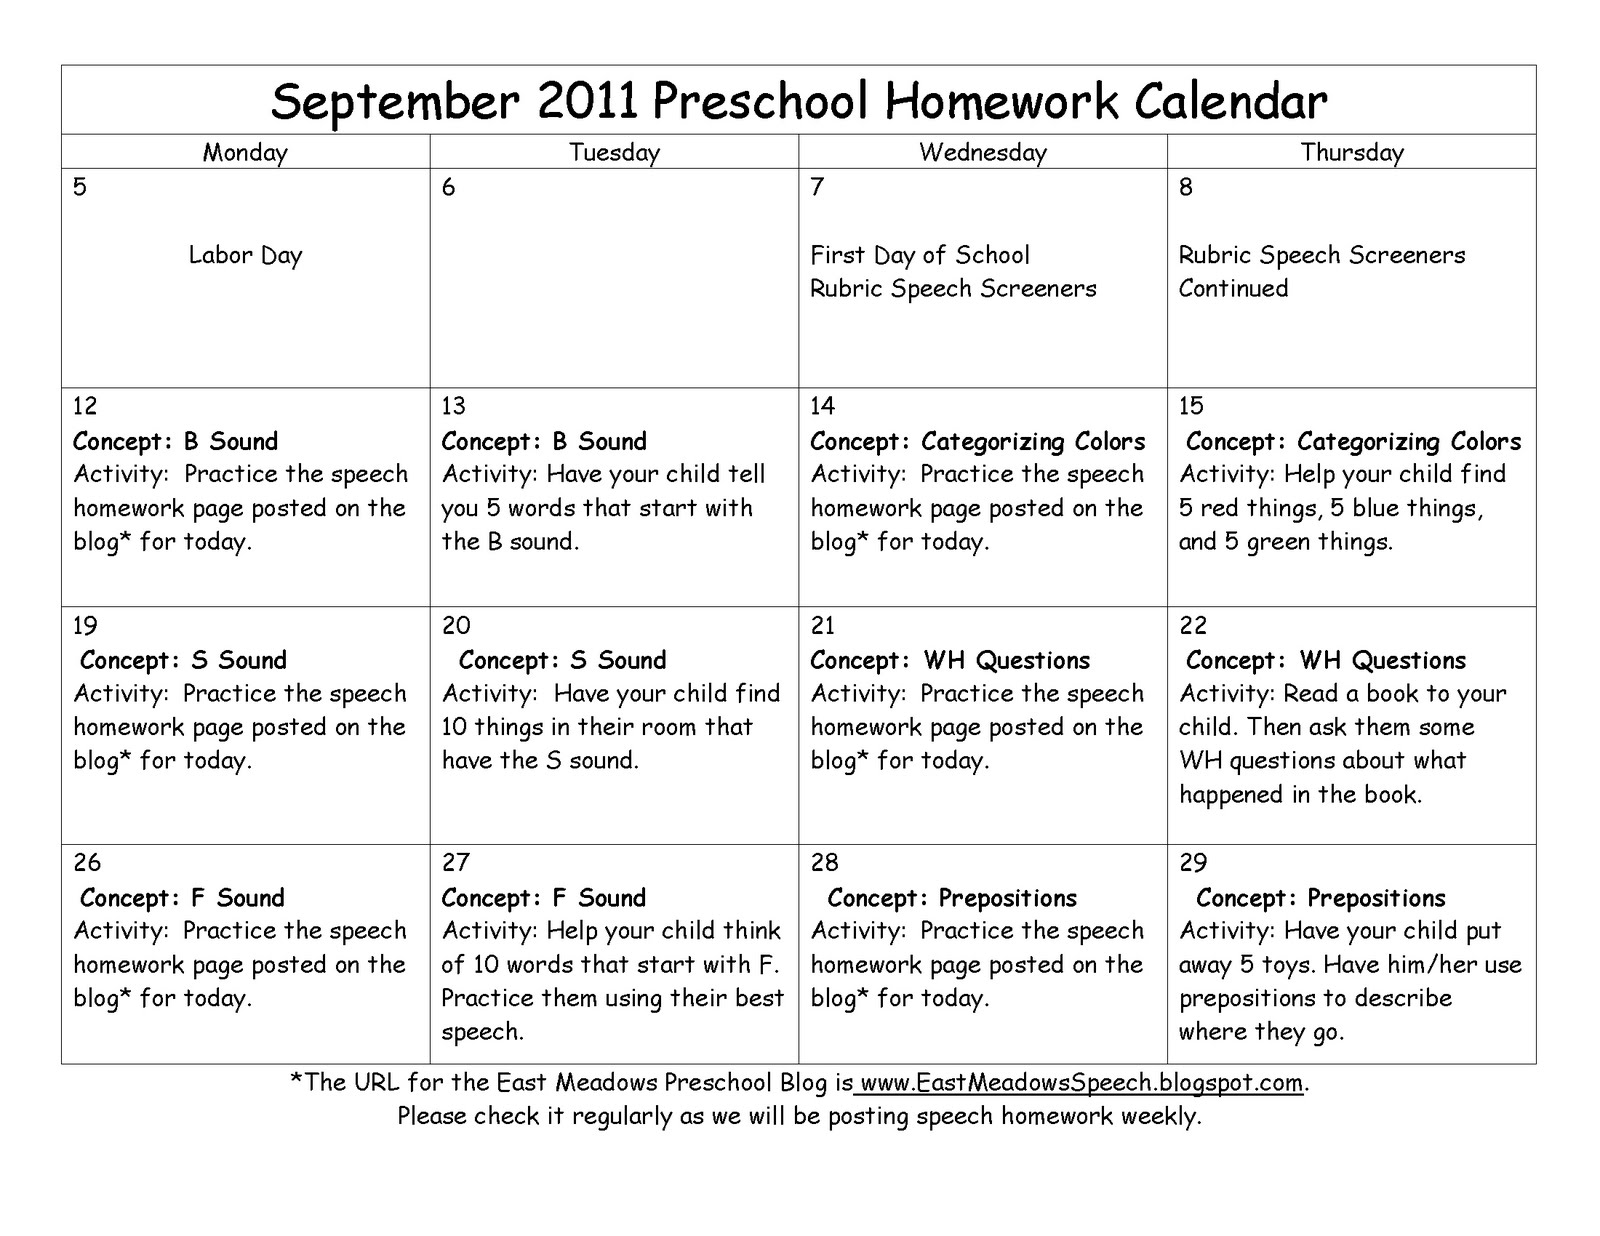 East Meadows Speech September Speech Homework Calendar